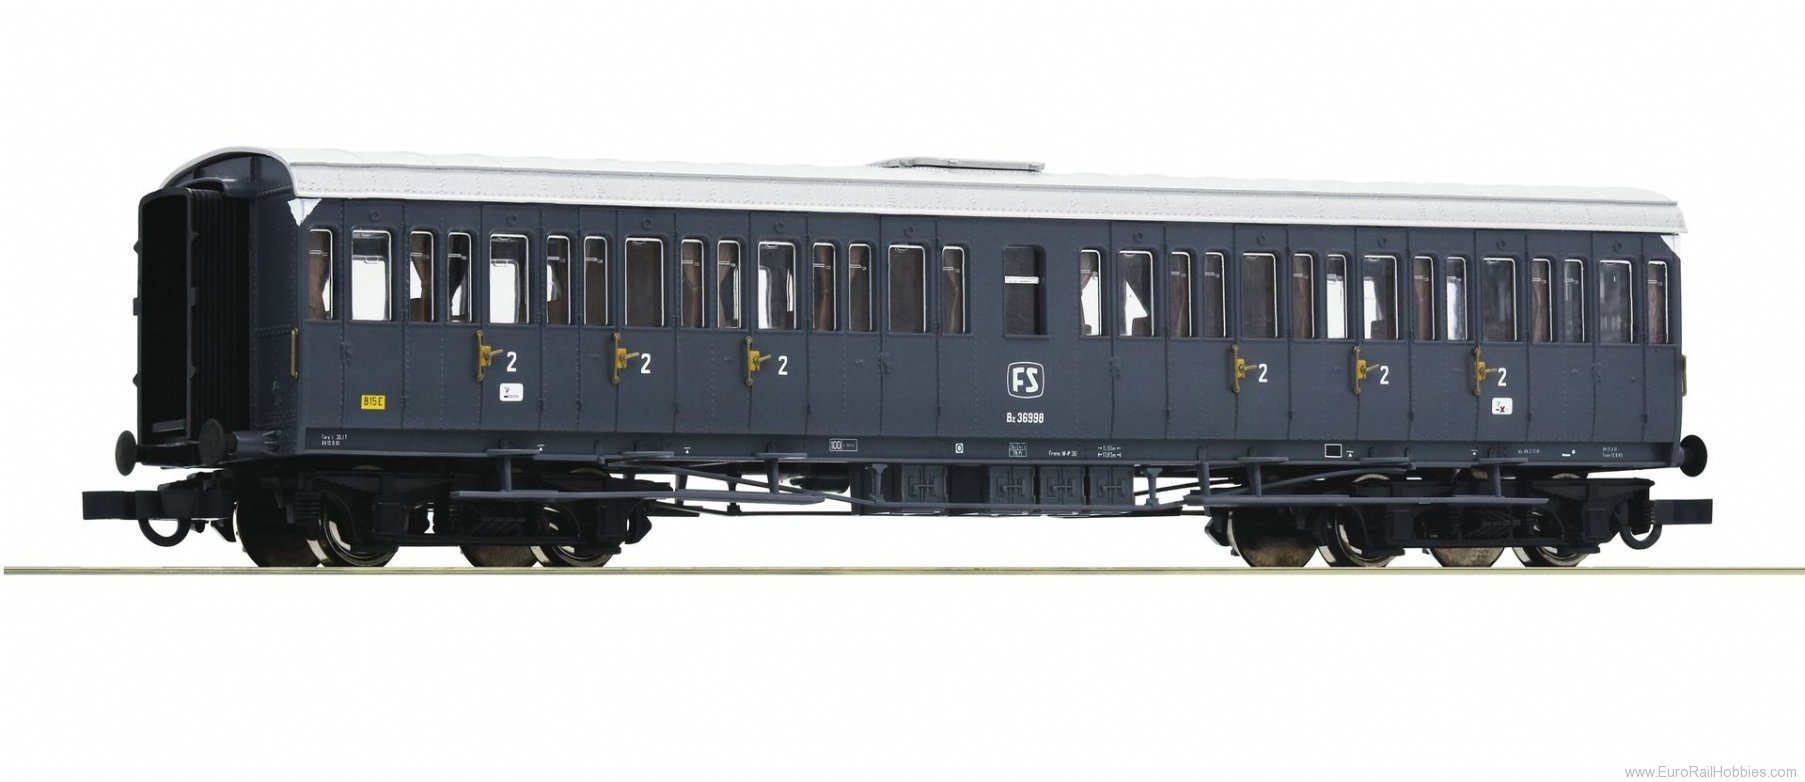 Roco 64984 2nd class passenger carriage, FS